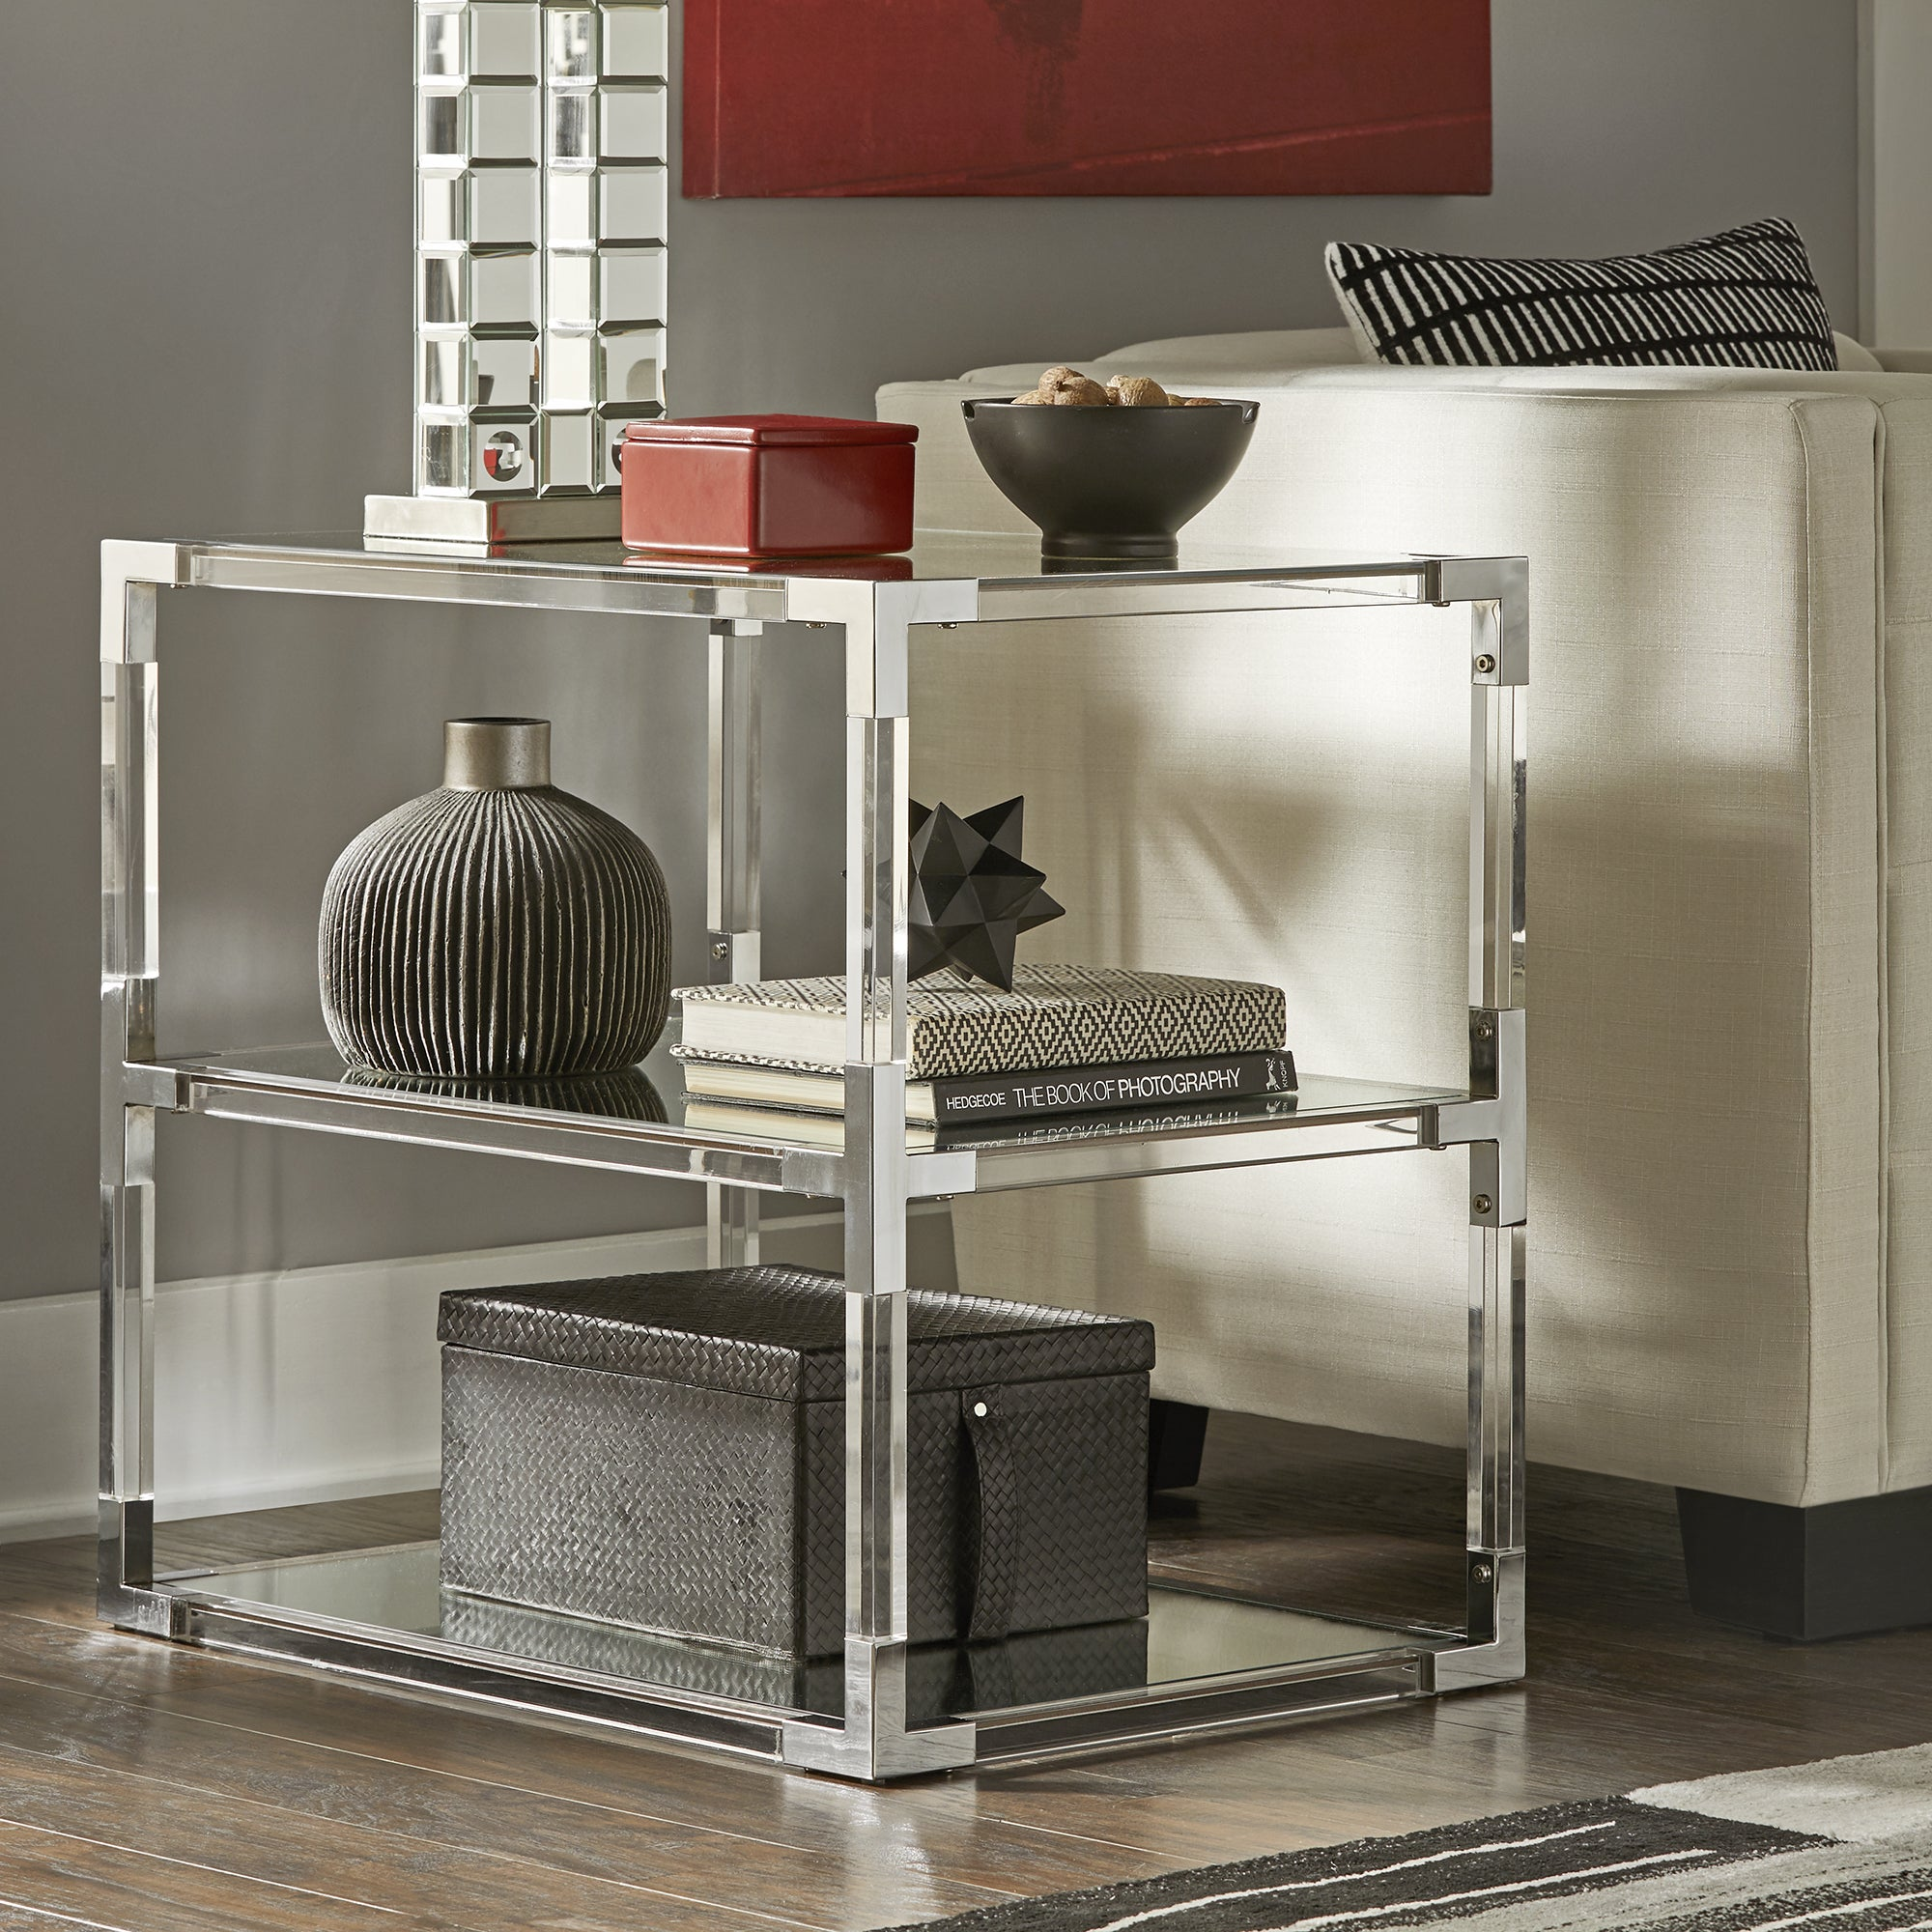 Cyrus Clear Chrome Corner Mirrored Shelf End Table by iNSPIRE Q Bold - Free  Shipping Today - Overstock.com - 21781608